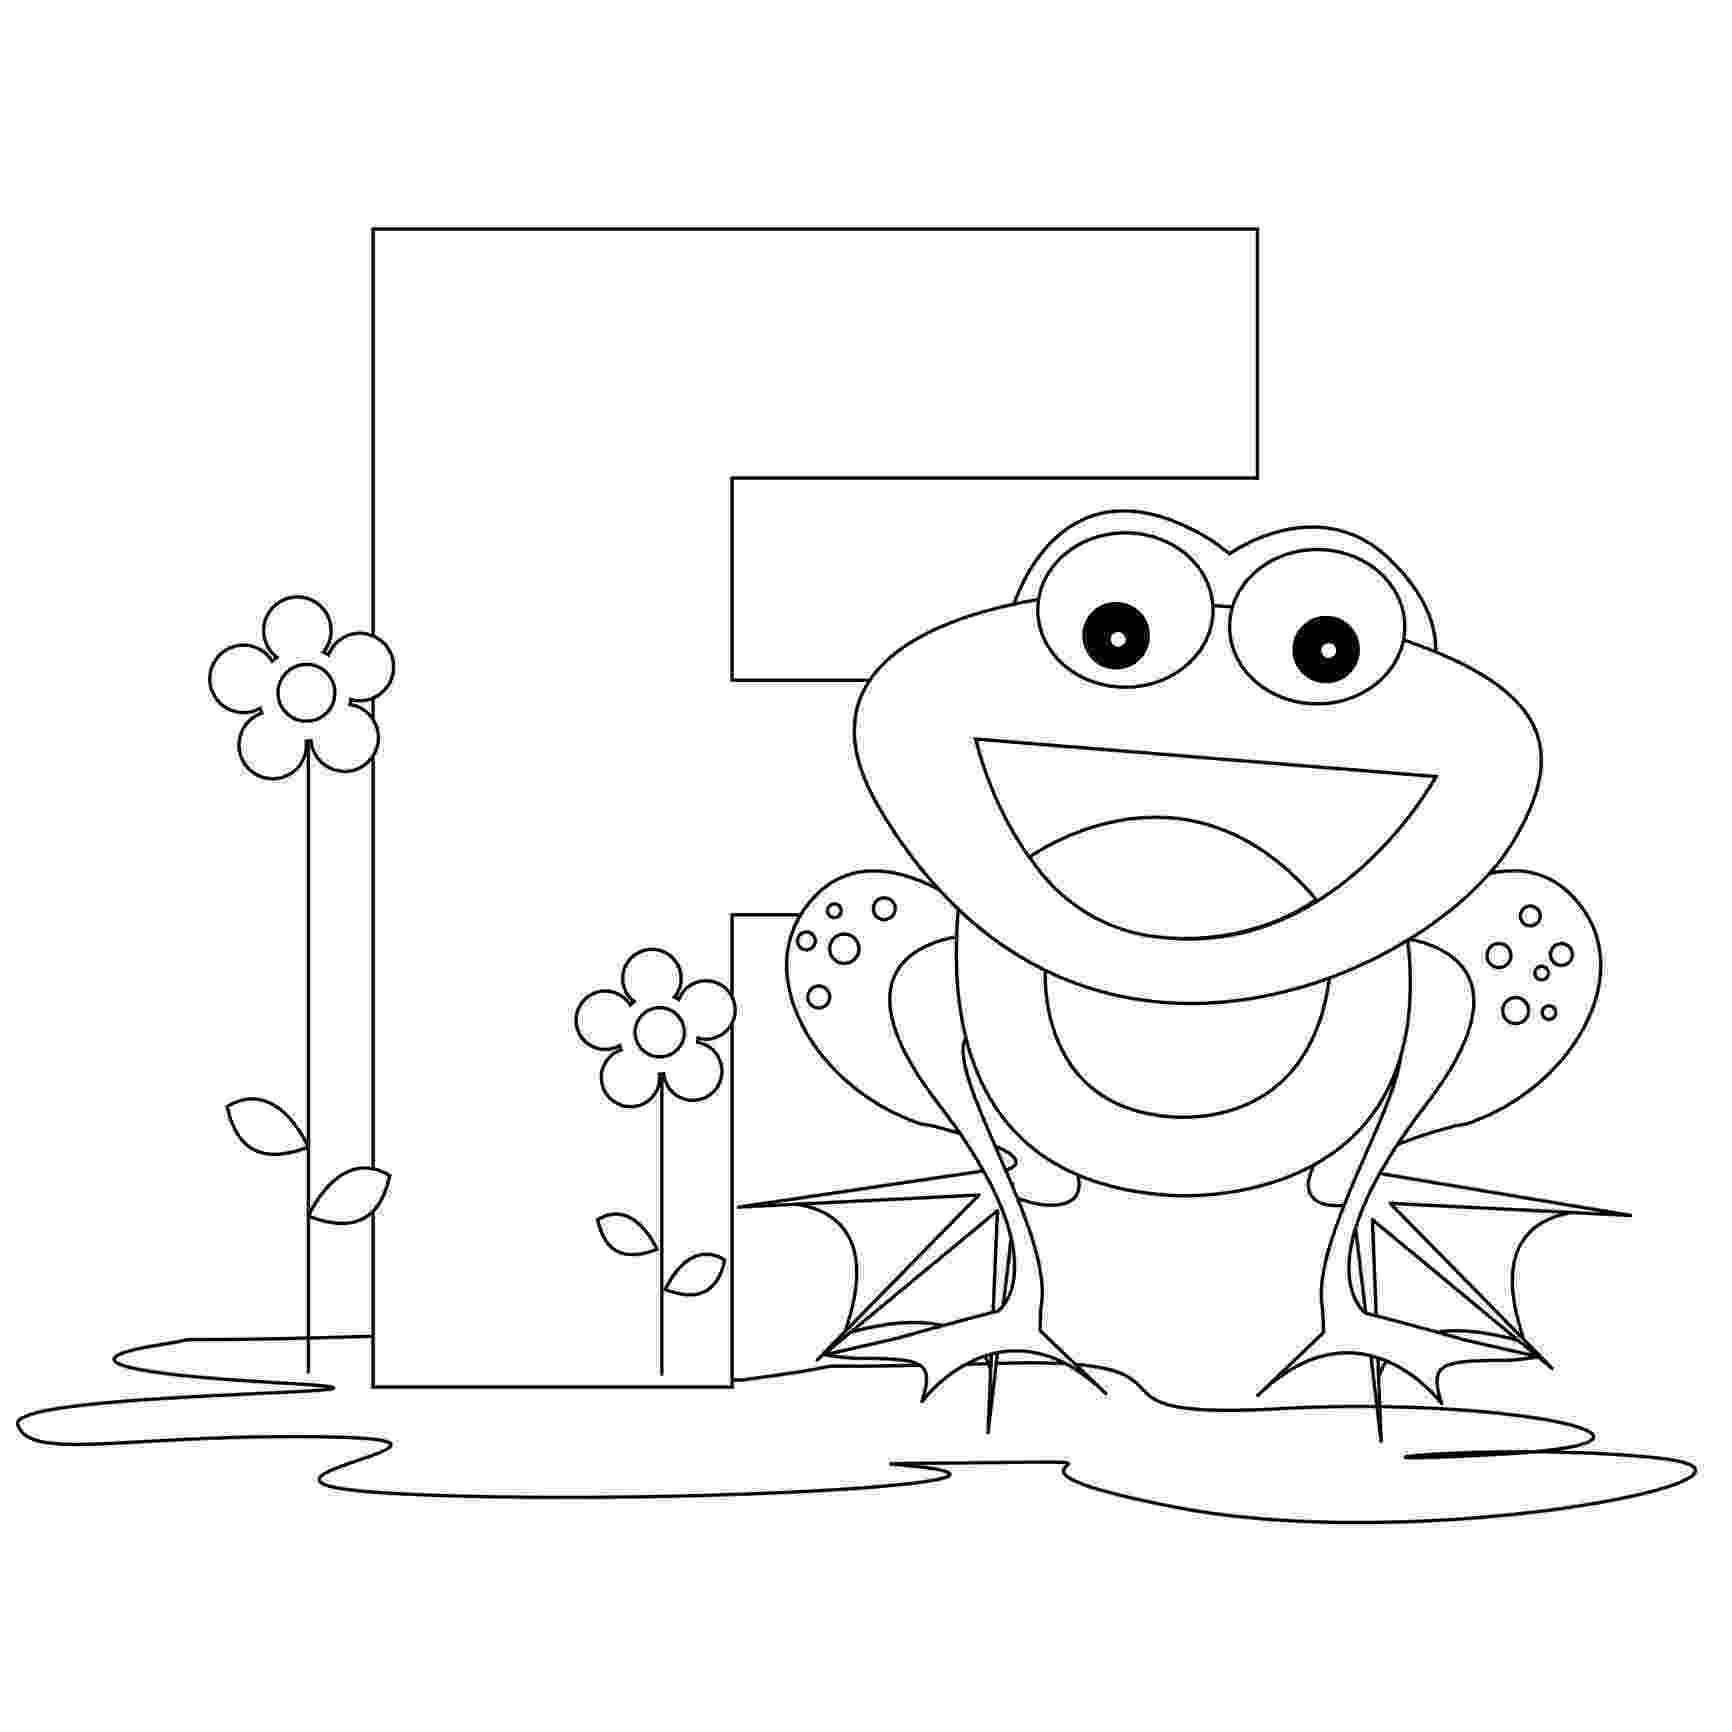 alphabet coloring pages for preschoolers free printable alphabet coloring pages for kids best alphabet pages preschoolers coloring for